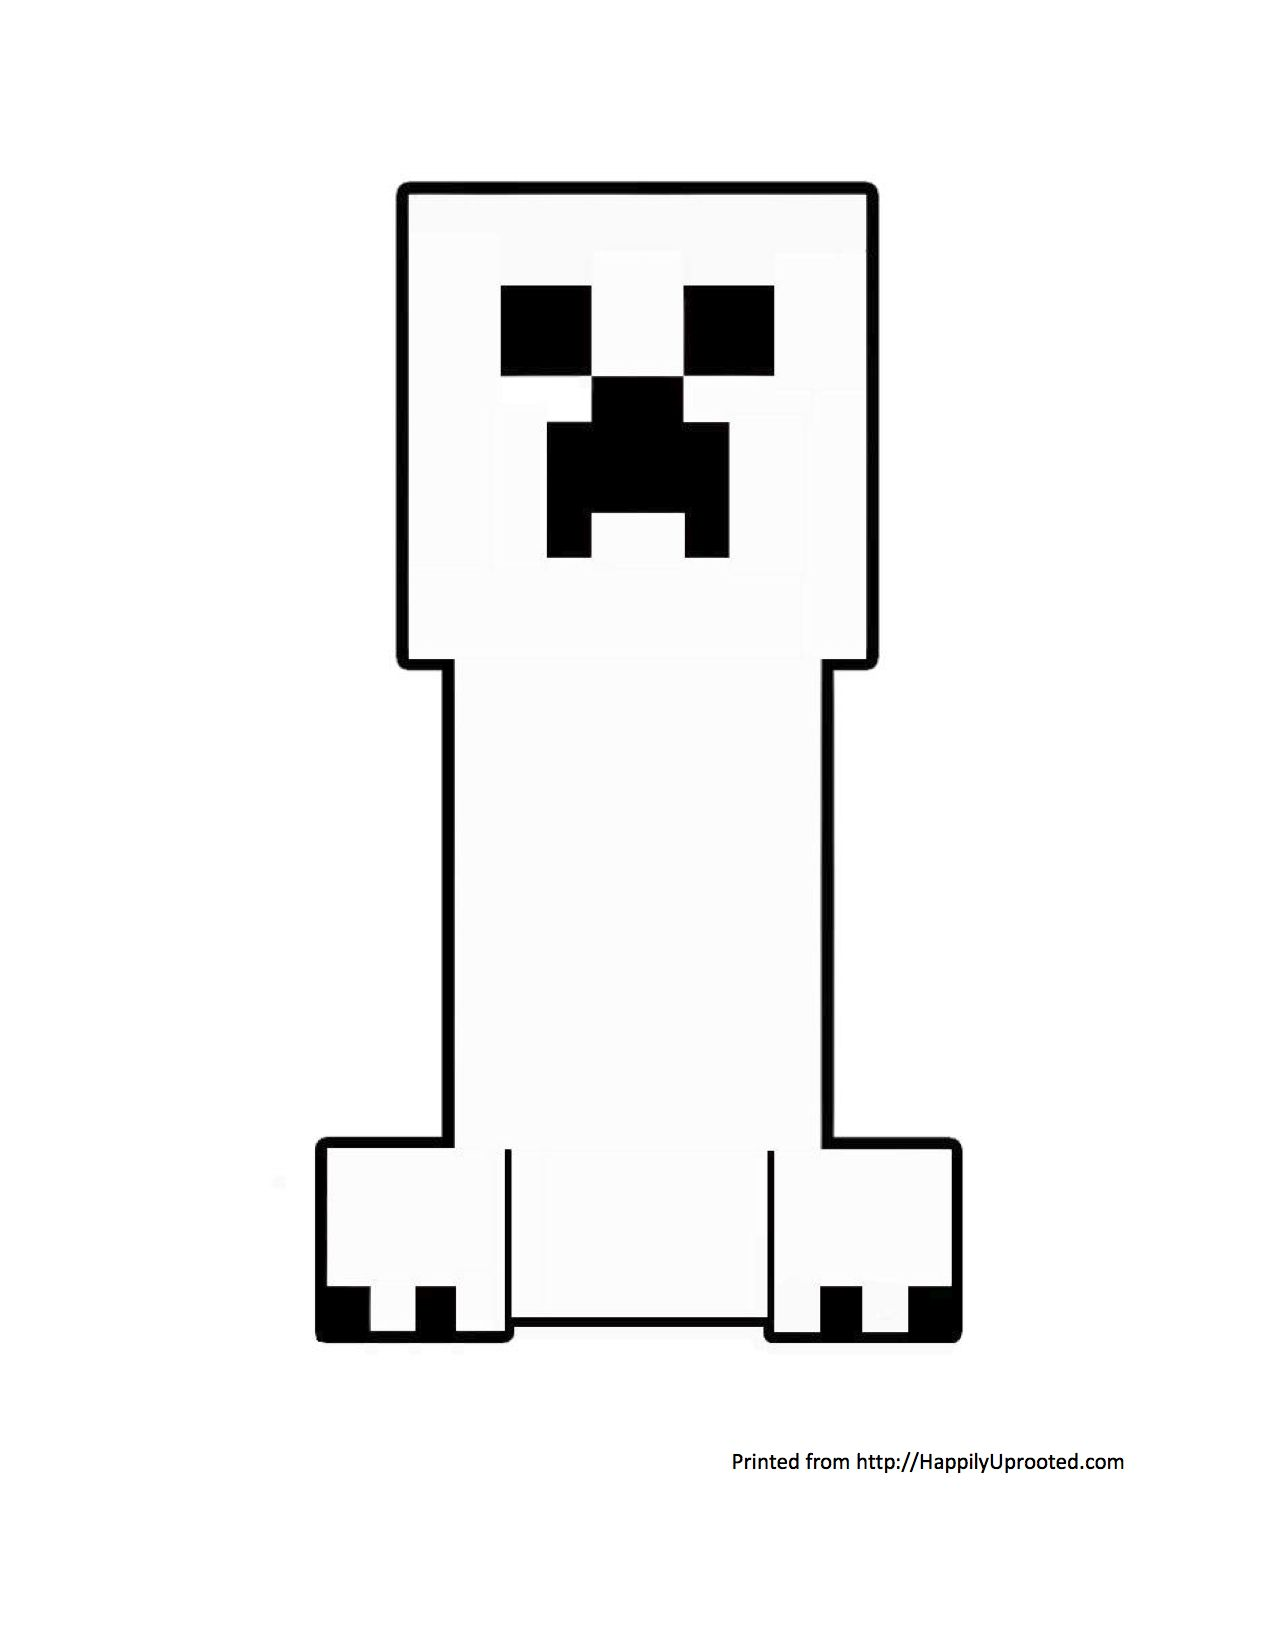 Minecraft Creeper Coloring Page Happily Uprooted Minecraft Coloring Pages Coloring Pages Creeper Minecraft